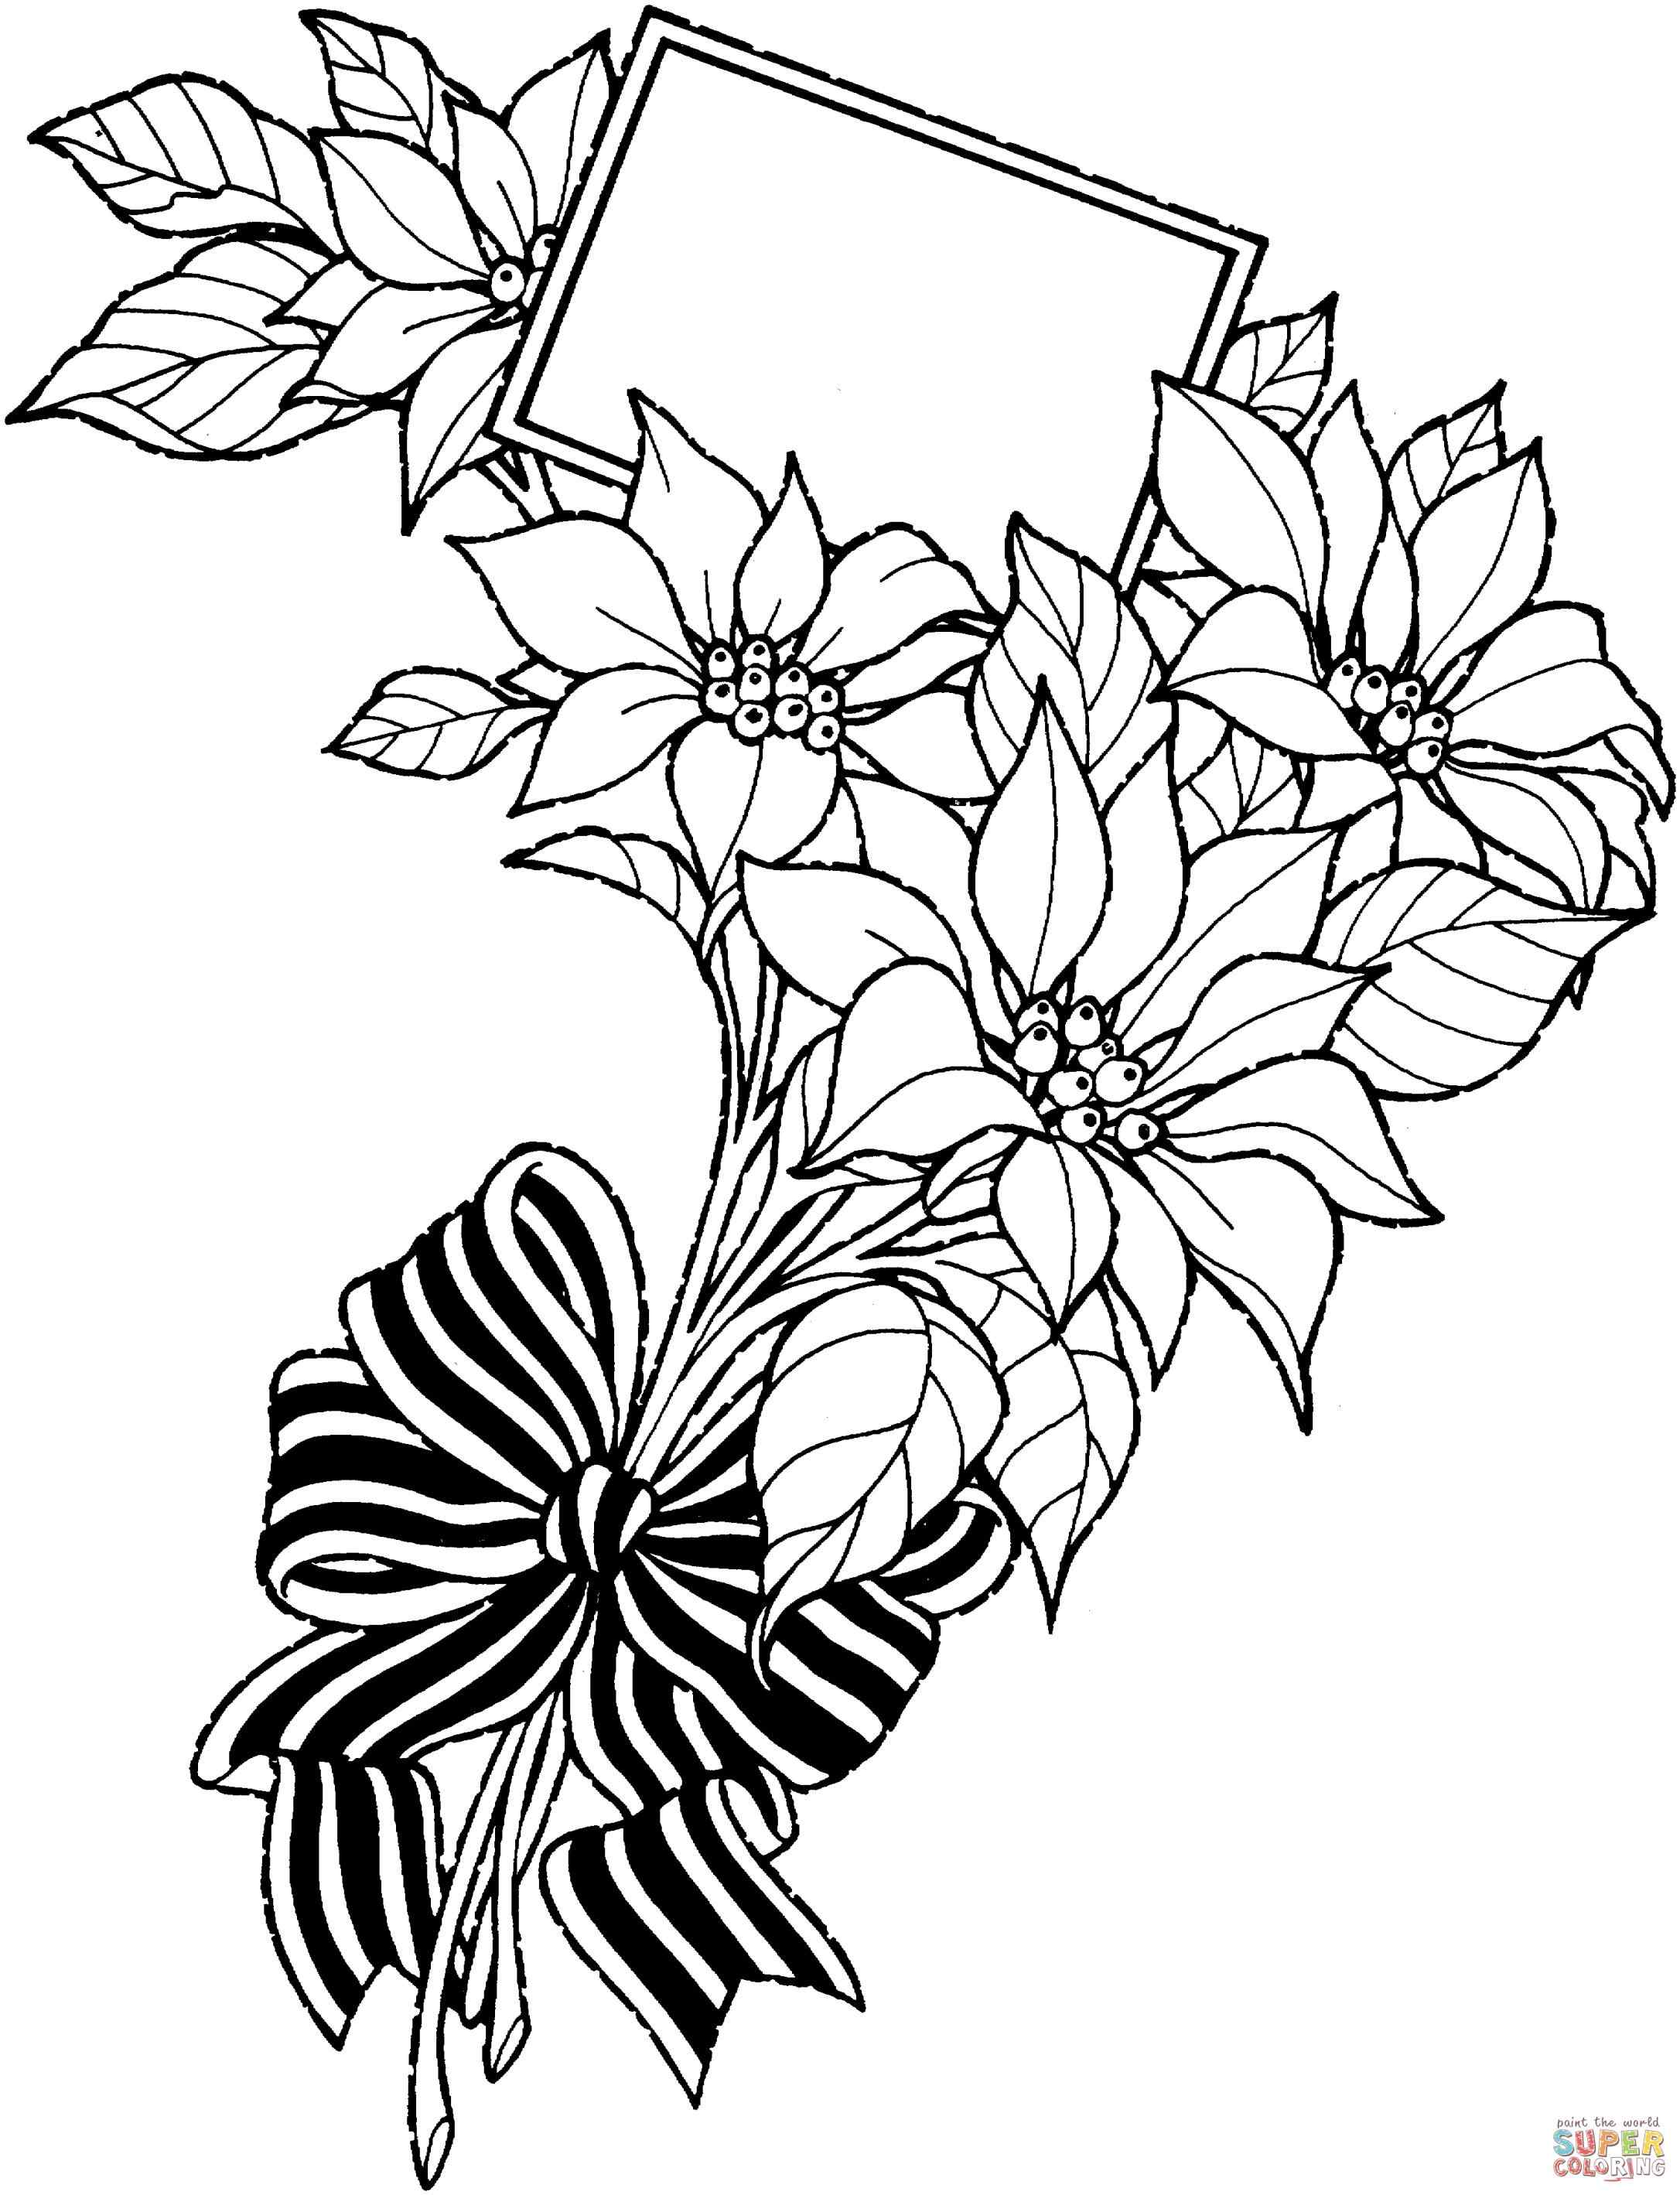 White flower bunch clipart free vector library Collection of Aster clipart | Free download best Aster clipart on ... vector library